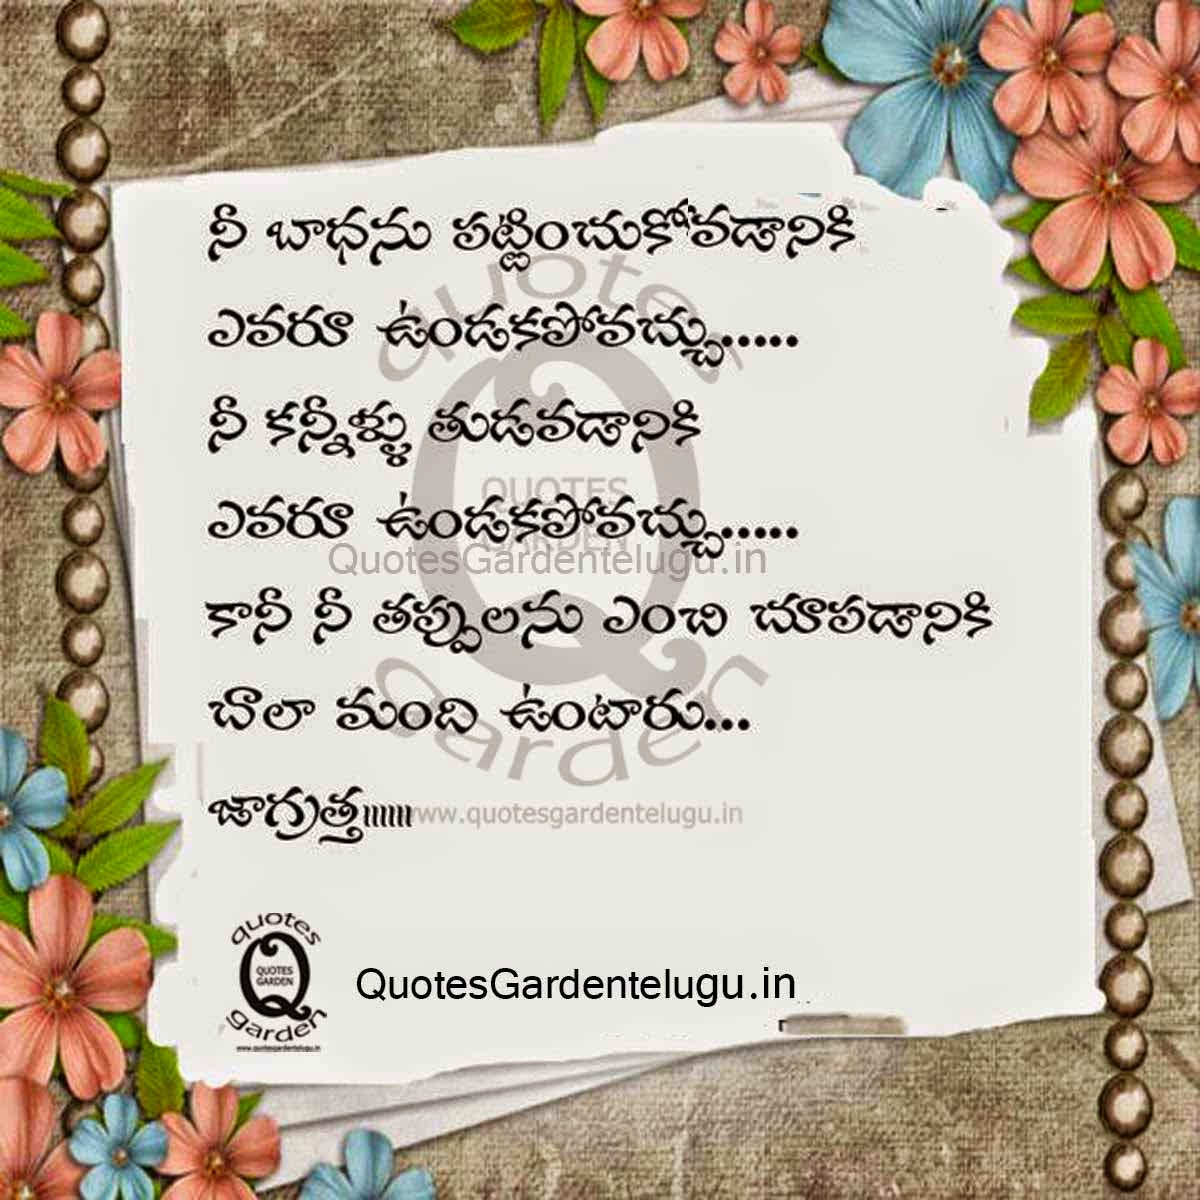 Telugu Comedy Wallpapers With Quotes: Best Telugu Friendship Quotes With Images